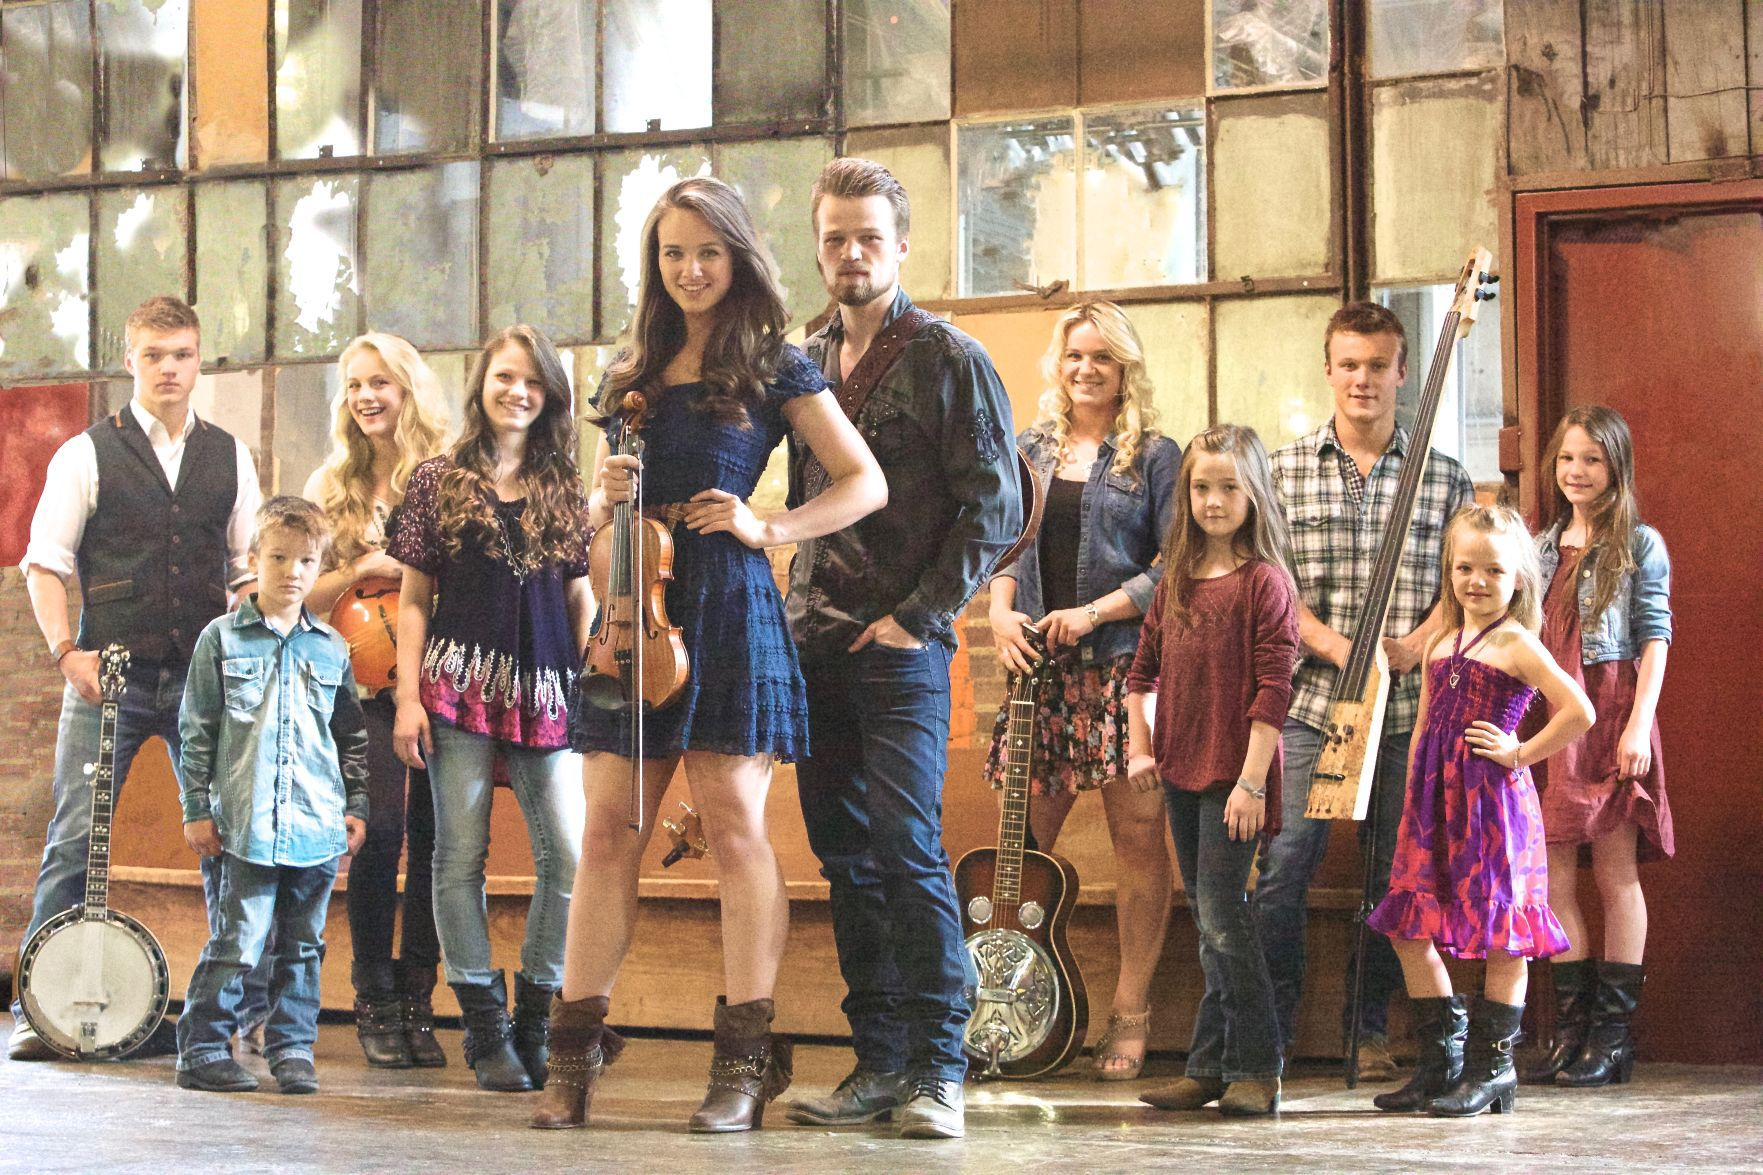 Share the willis family: season 2 movie to your friends.